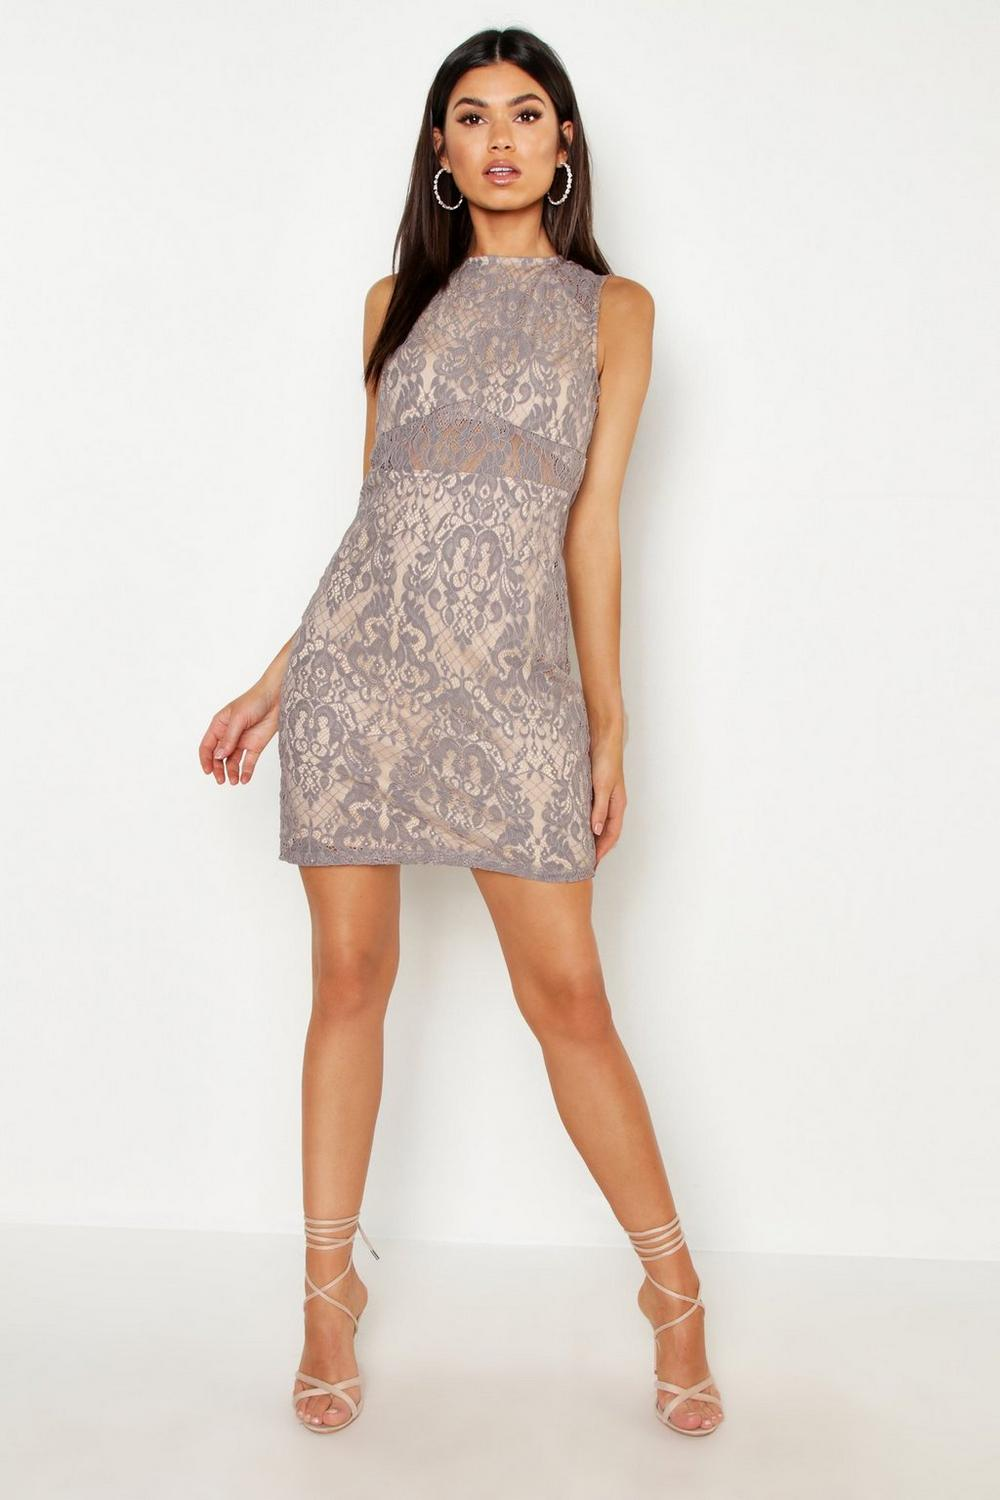 Woven Embroidery Lace Bodycon Dress Boohoo